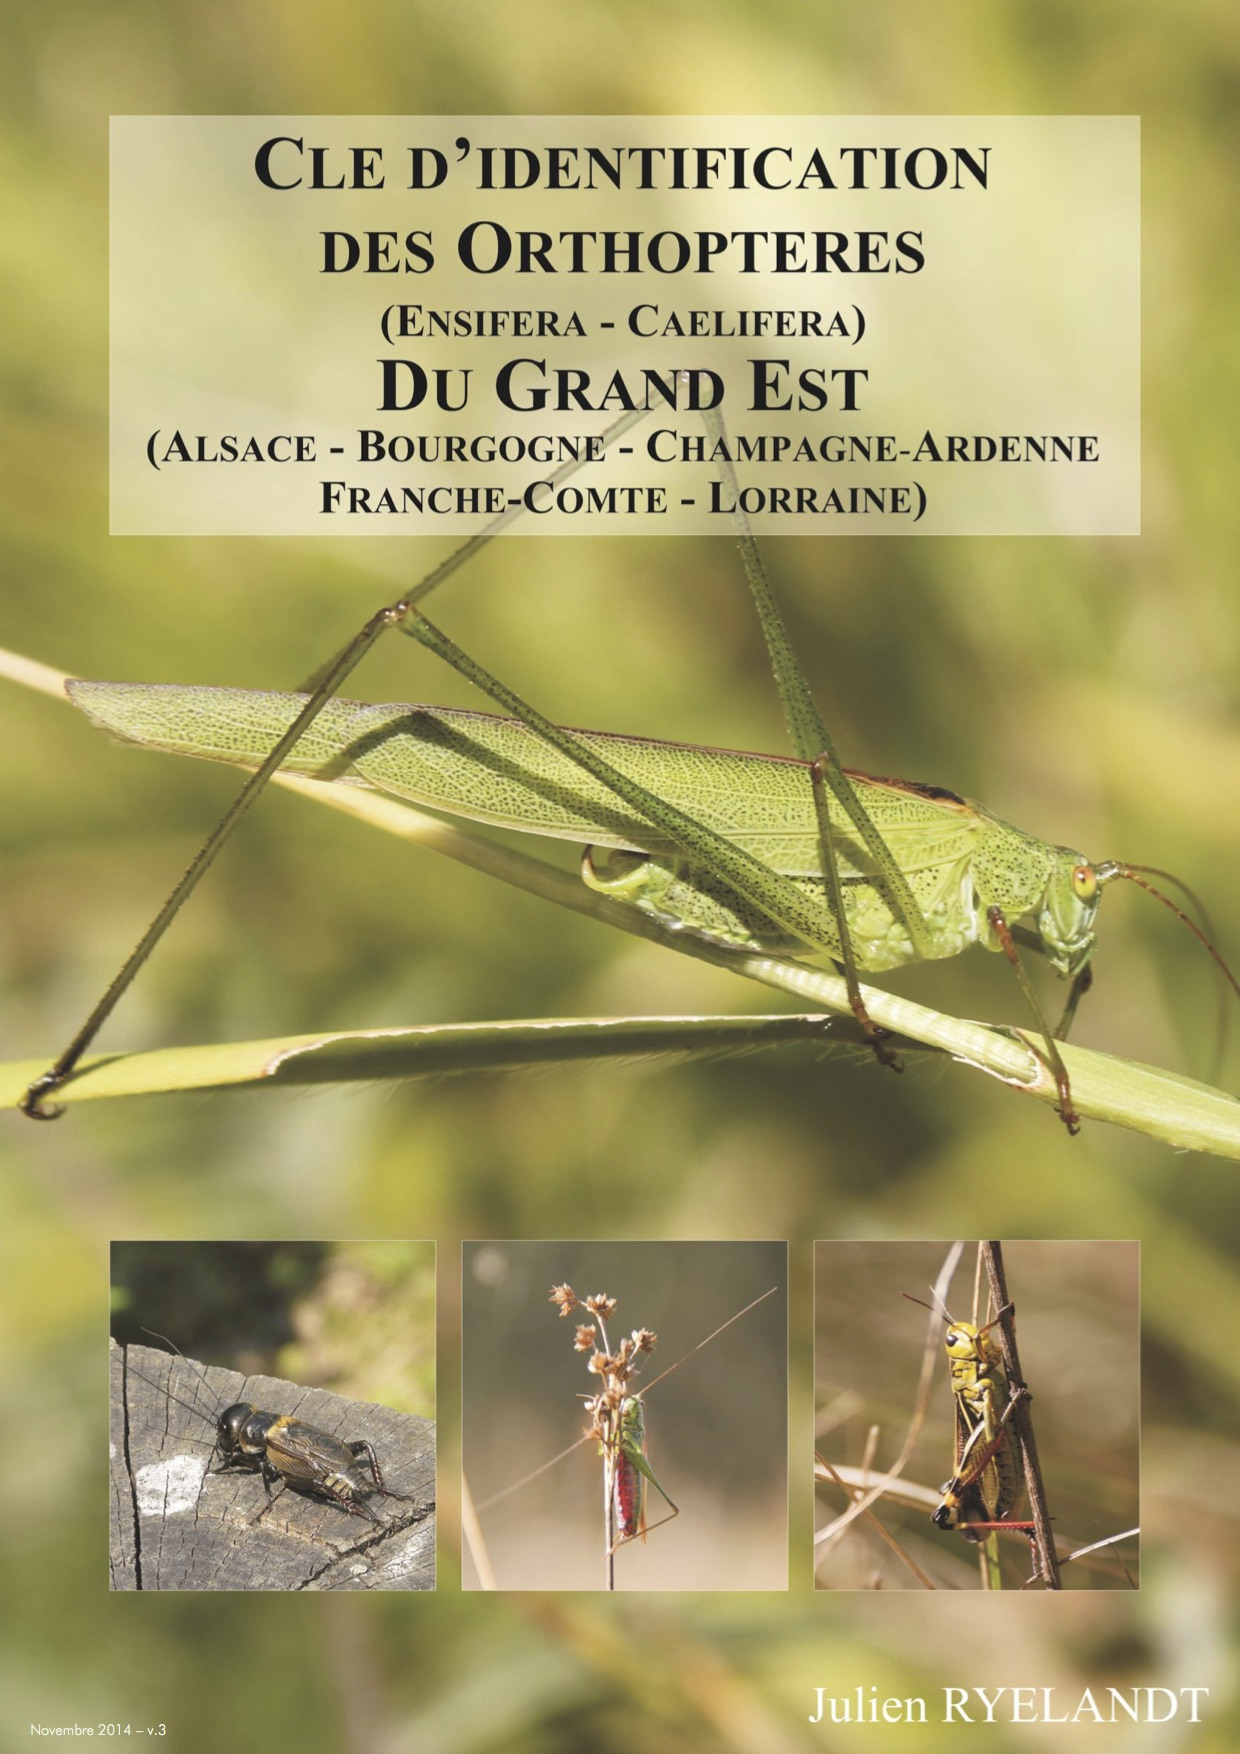 http://files.biolovision.net/www.faune-alsace.org/userfiles/Insectes/ORTHOPTERA/J-RYELANDT2014cleorthopteres-gd-estv3.jpg